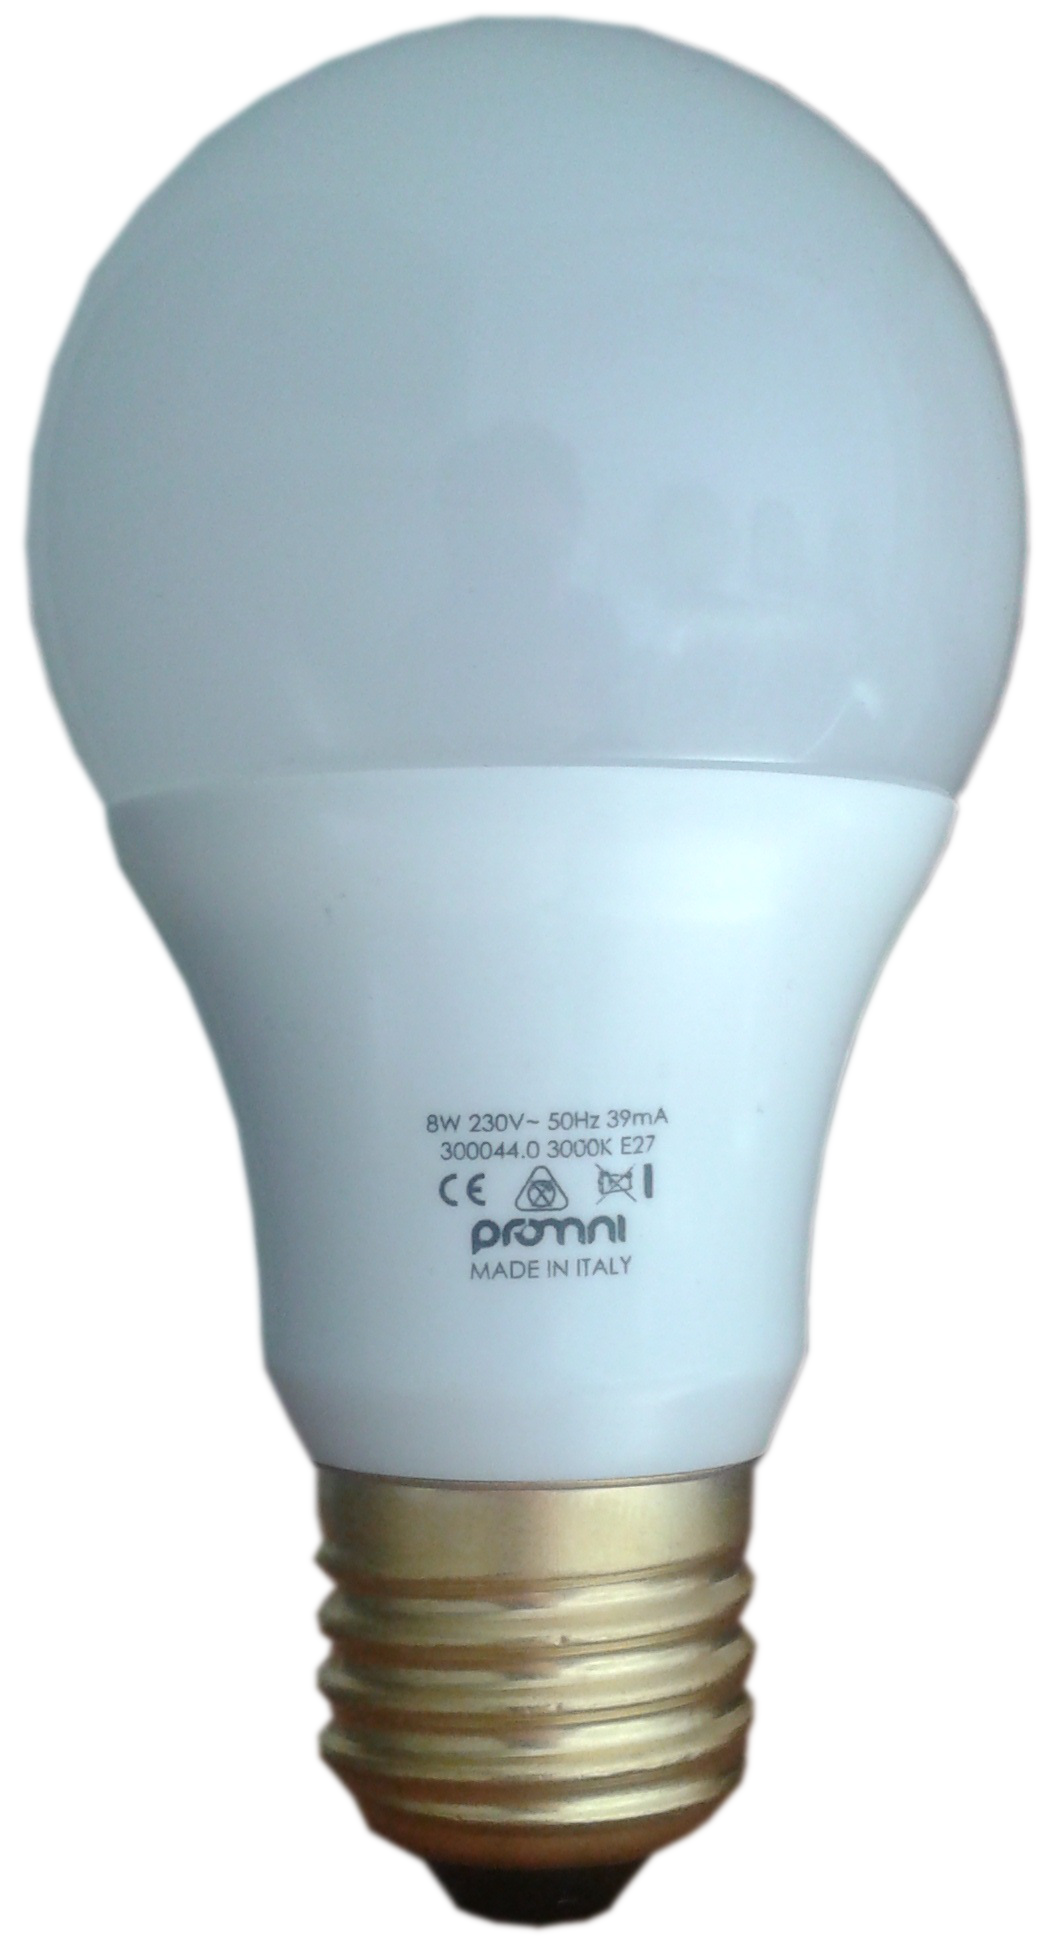 E27 LED Lamp 230V 8W Warm and Cold - LUXINO E27 8W 3000K